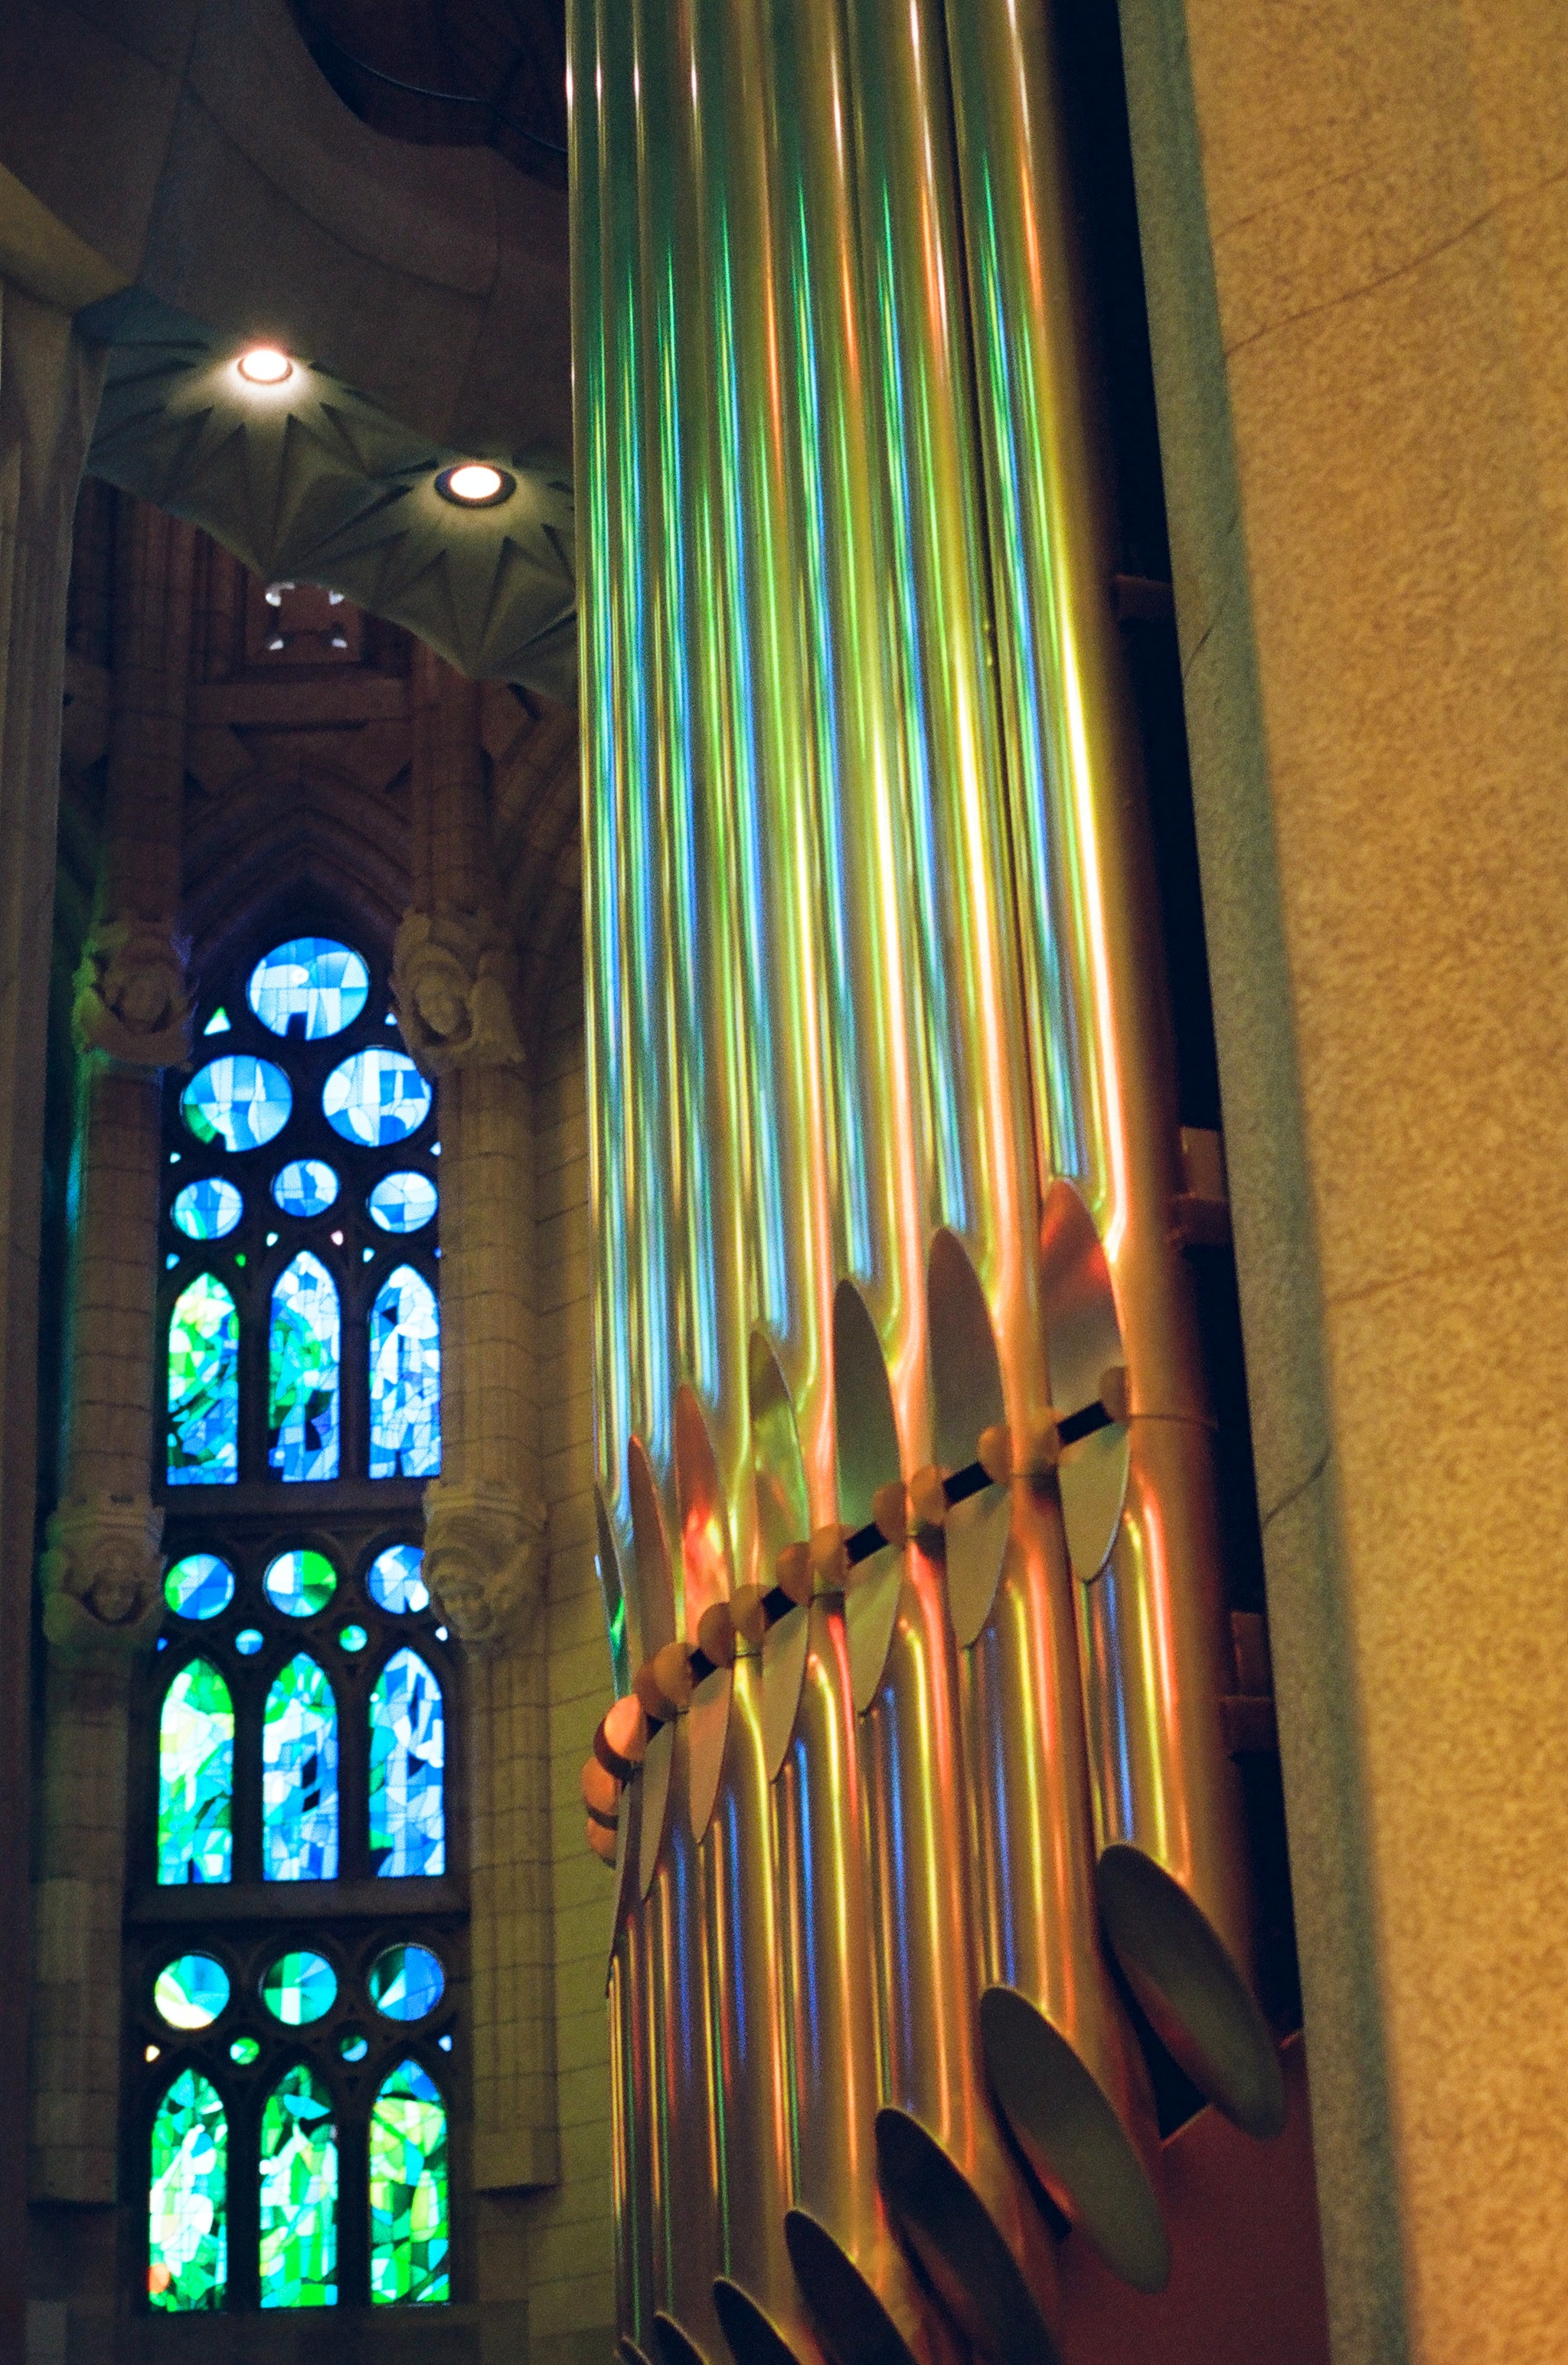 Pipes - Sagrada Familia, Barcelona